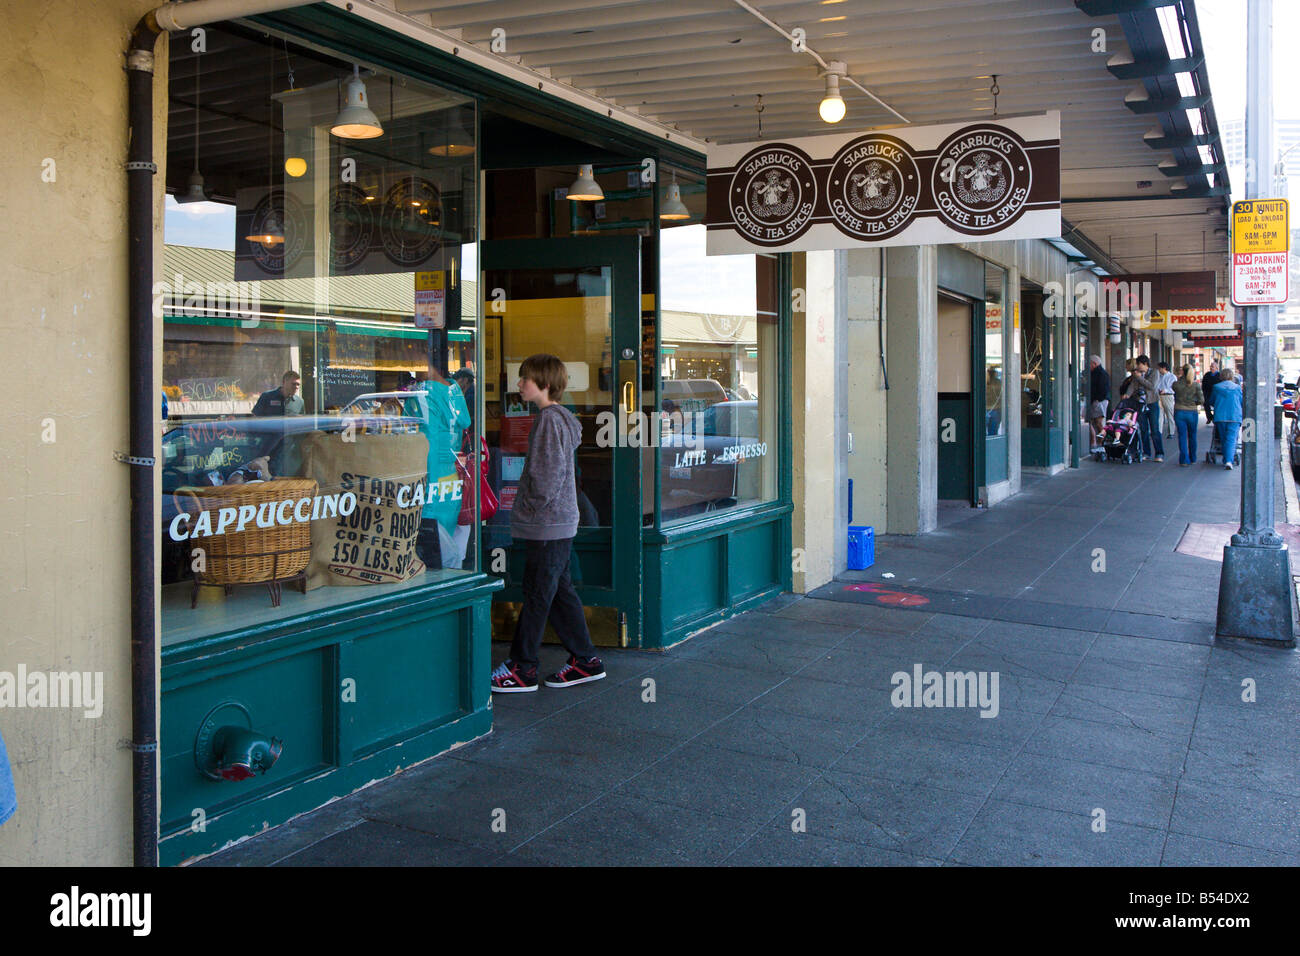 first starbucks stock photos u0026 first starbucks stock images alamy